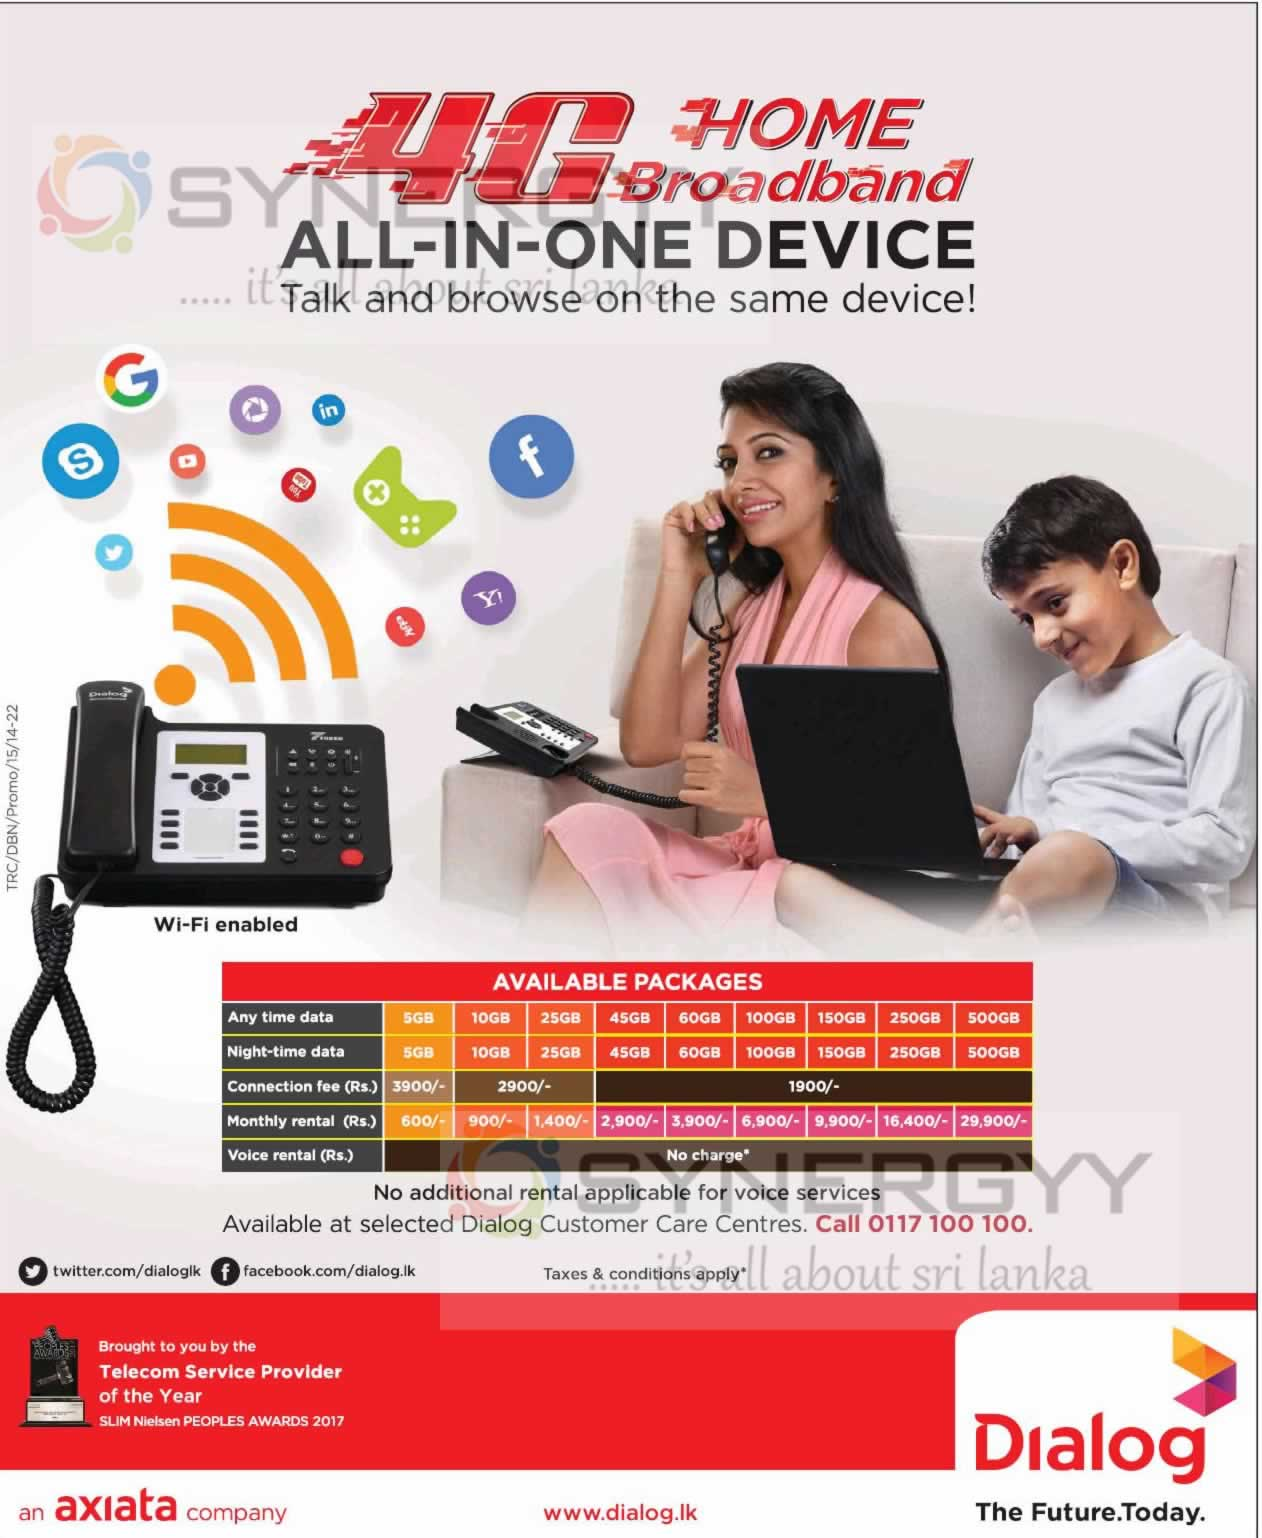 Dialog 4g Home Broadband All In One Device Rental